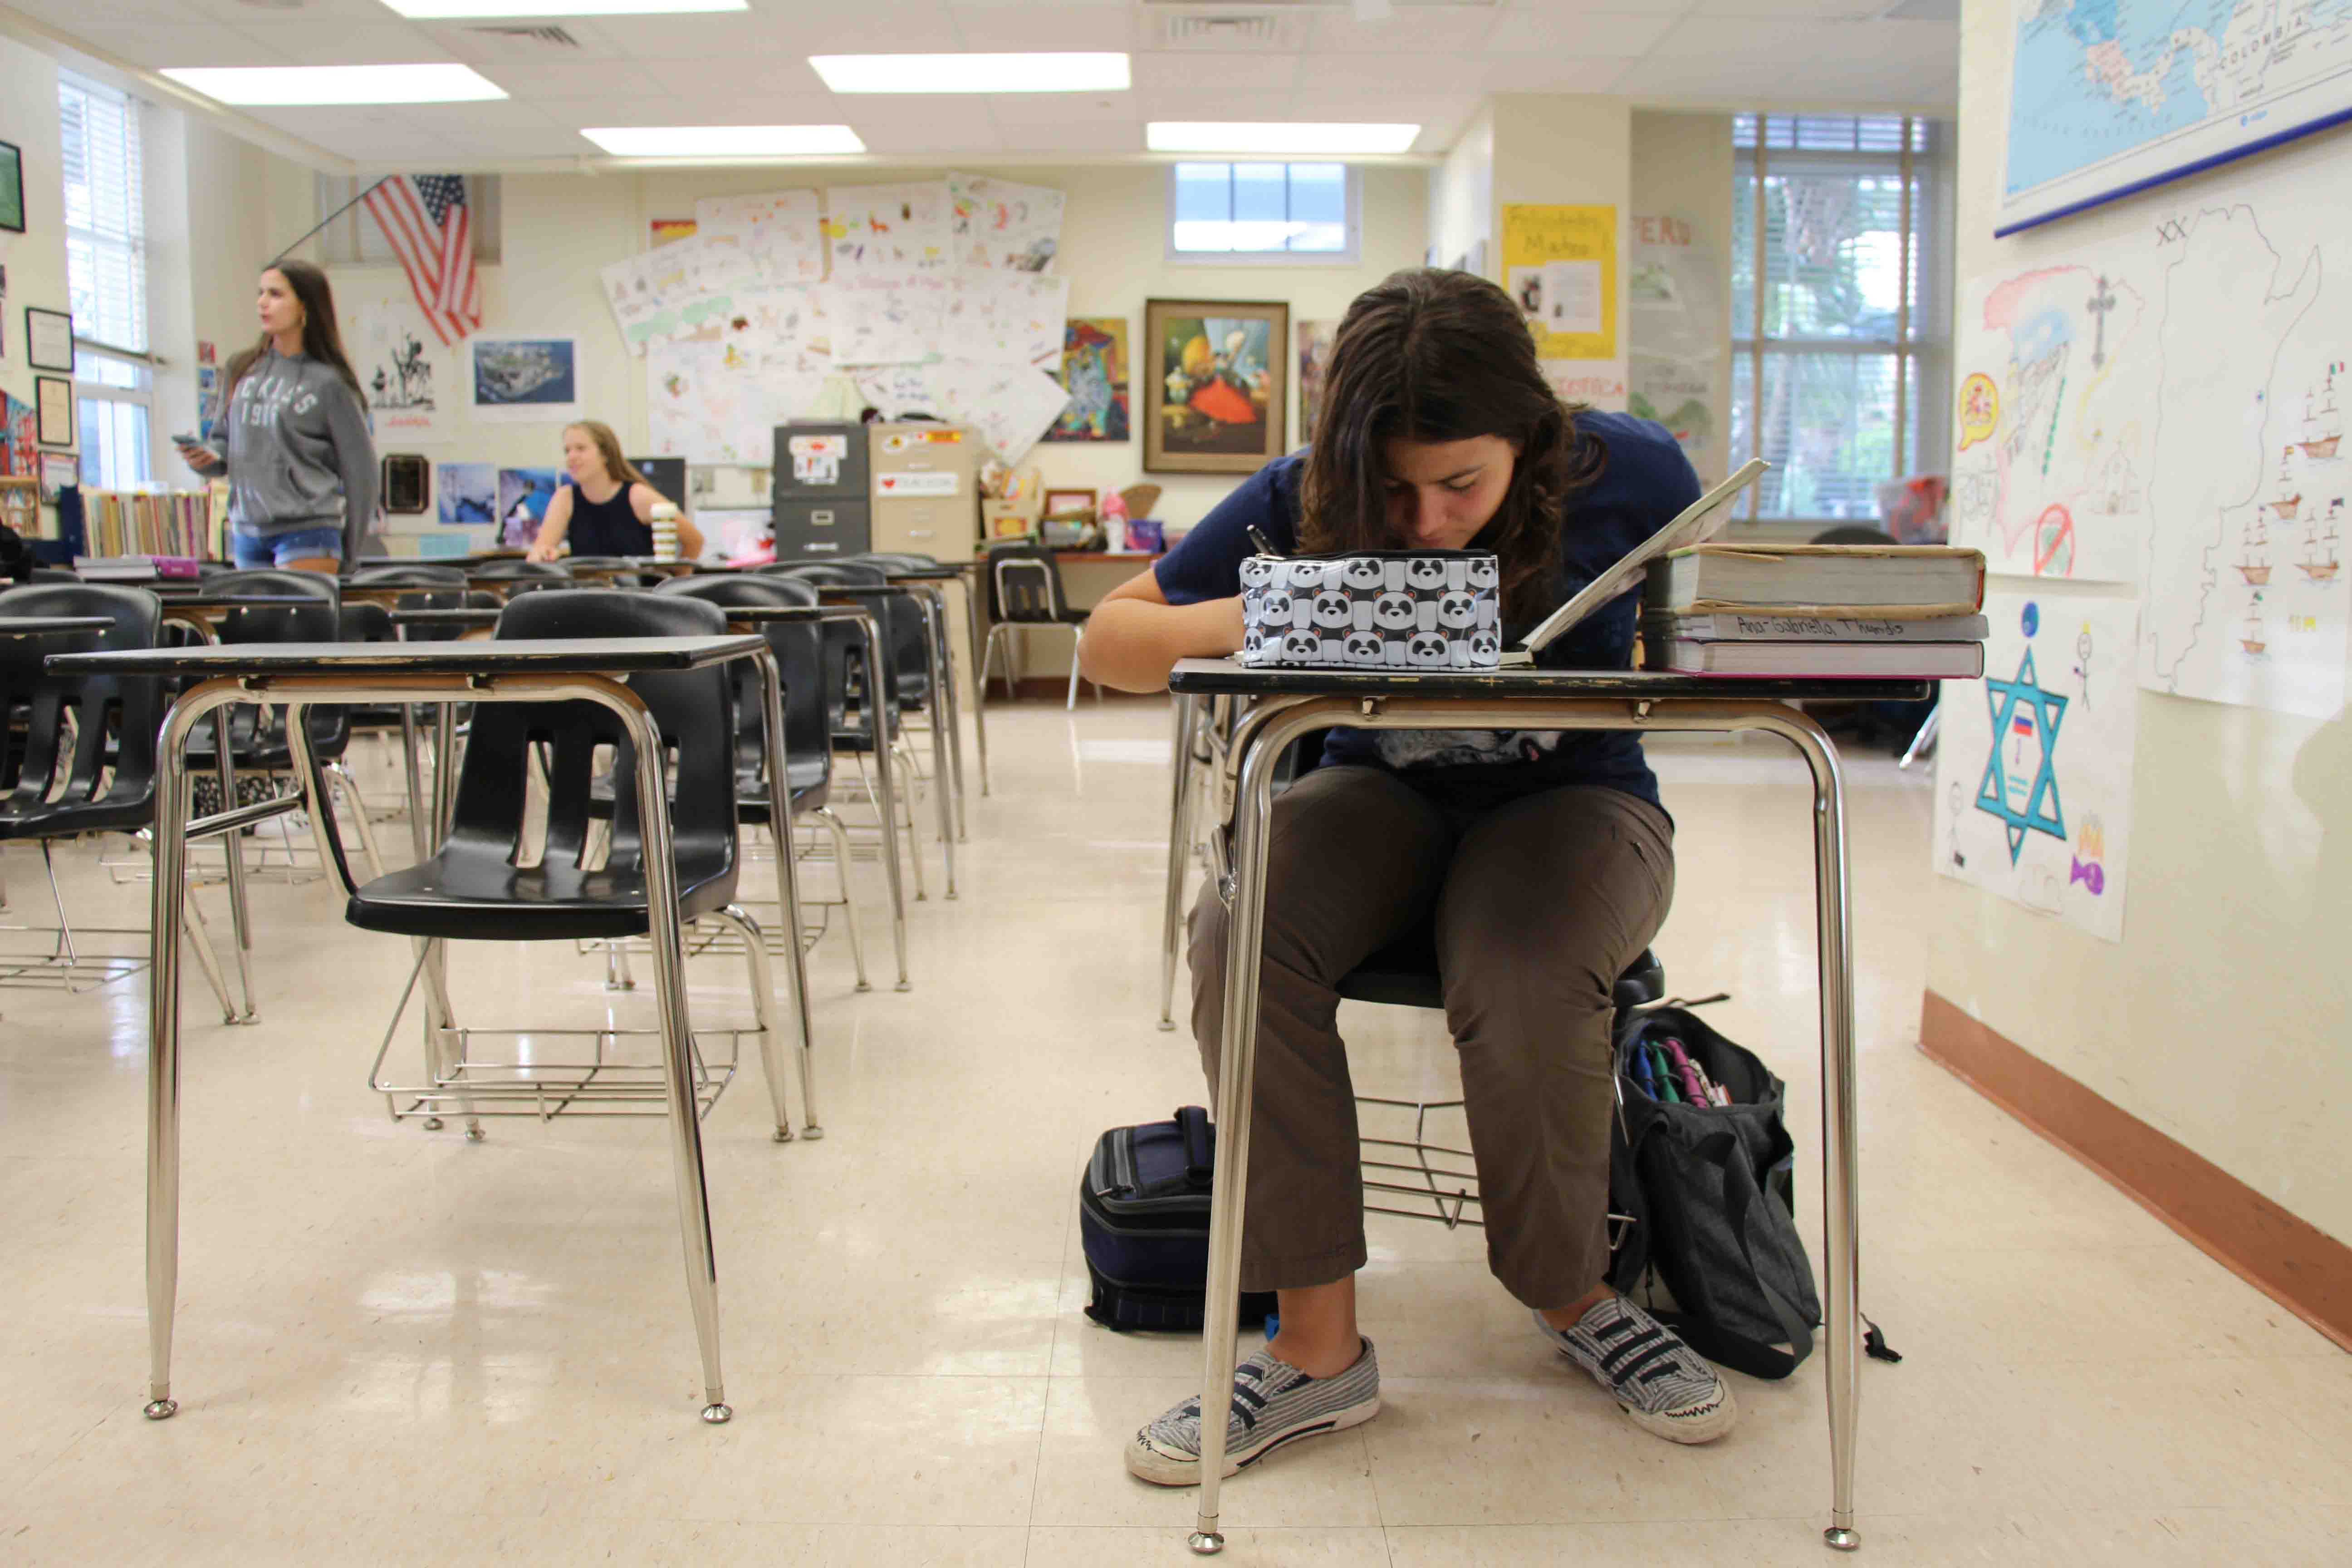 Visual freshman Gabi Thomadis sits at her desk and sketches in her sketchbook in a nearly empty classroom. Many students stayed home today so that they could help their families prepare for the hurricane possibly heading towards Florida.